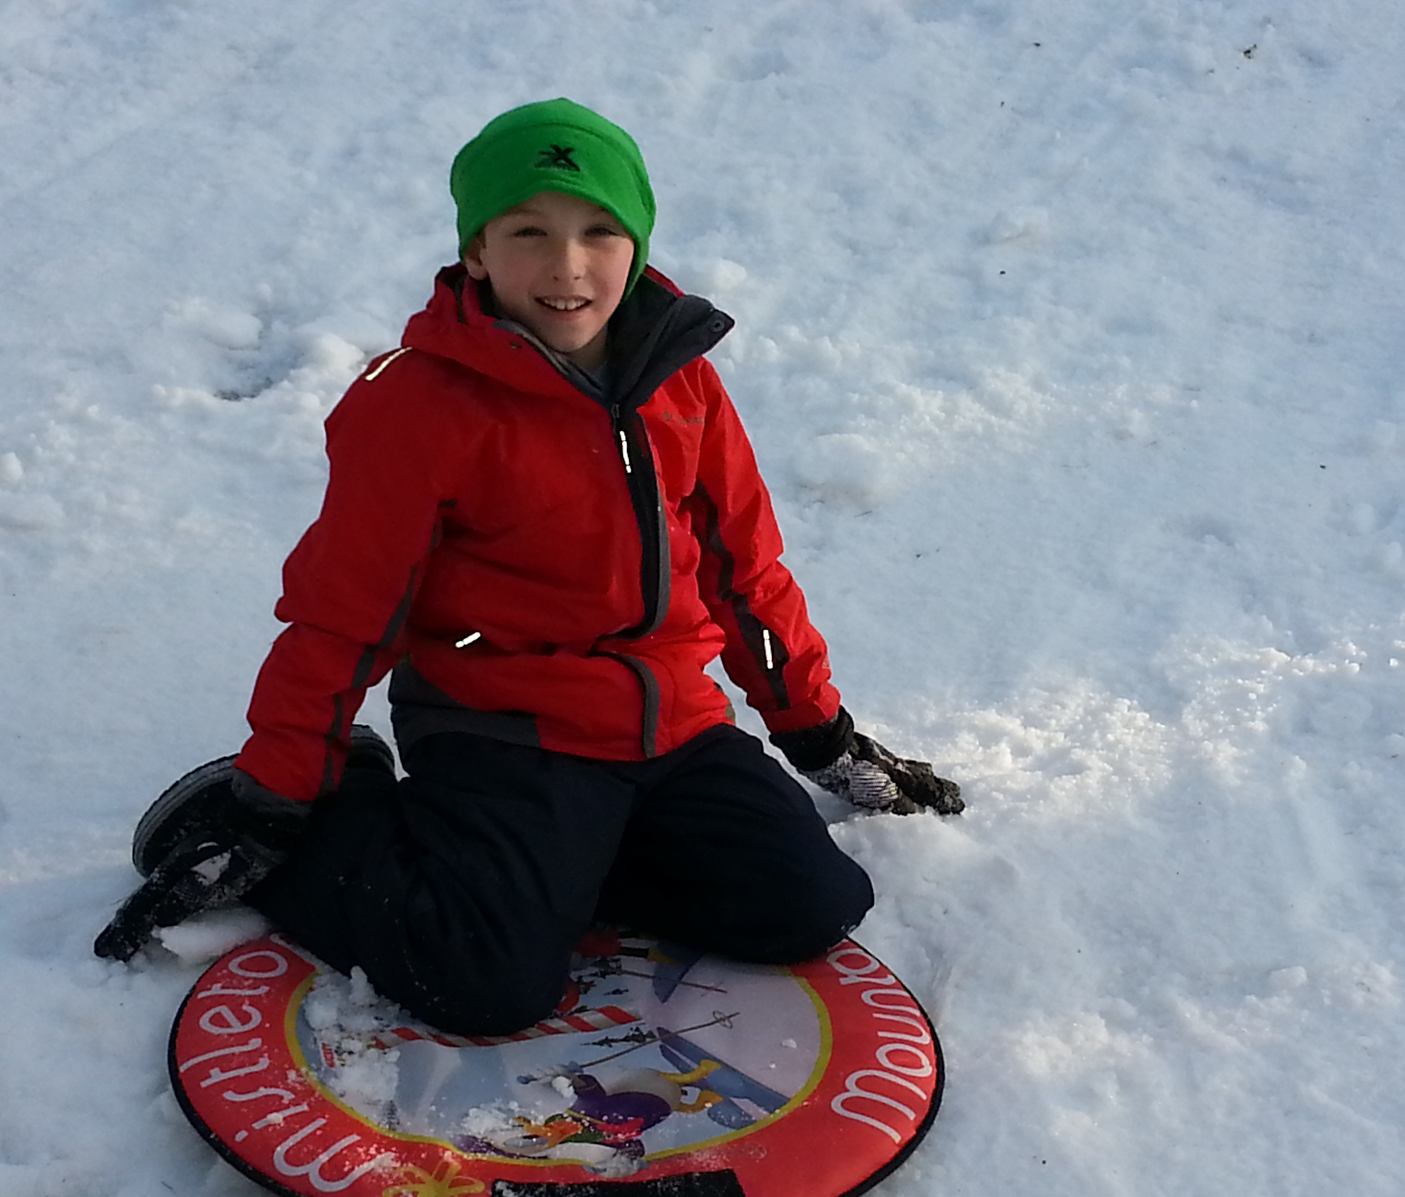 The author's little brother sleds down a snowy slope.